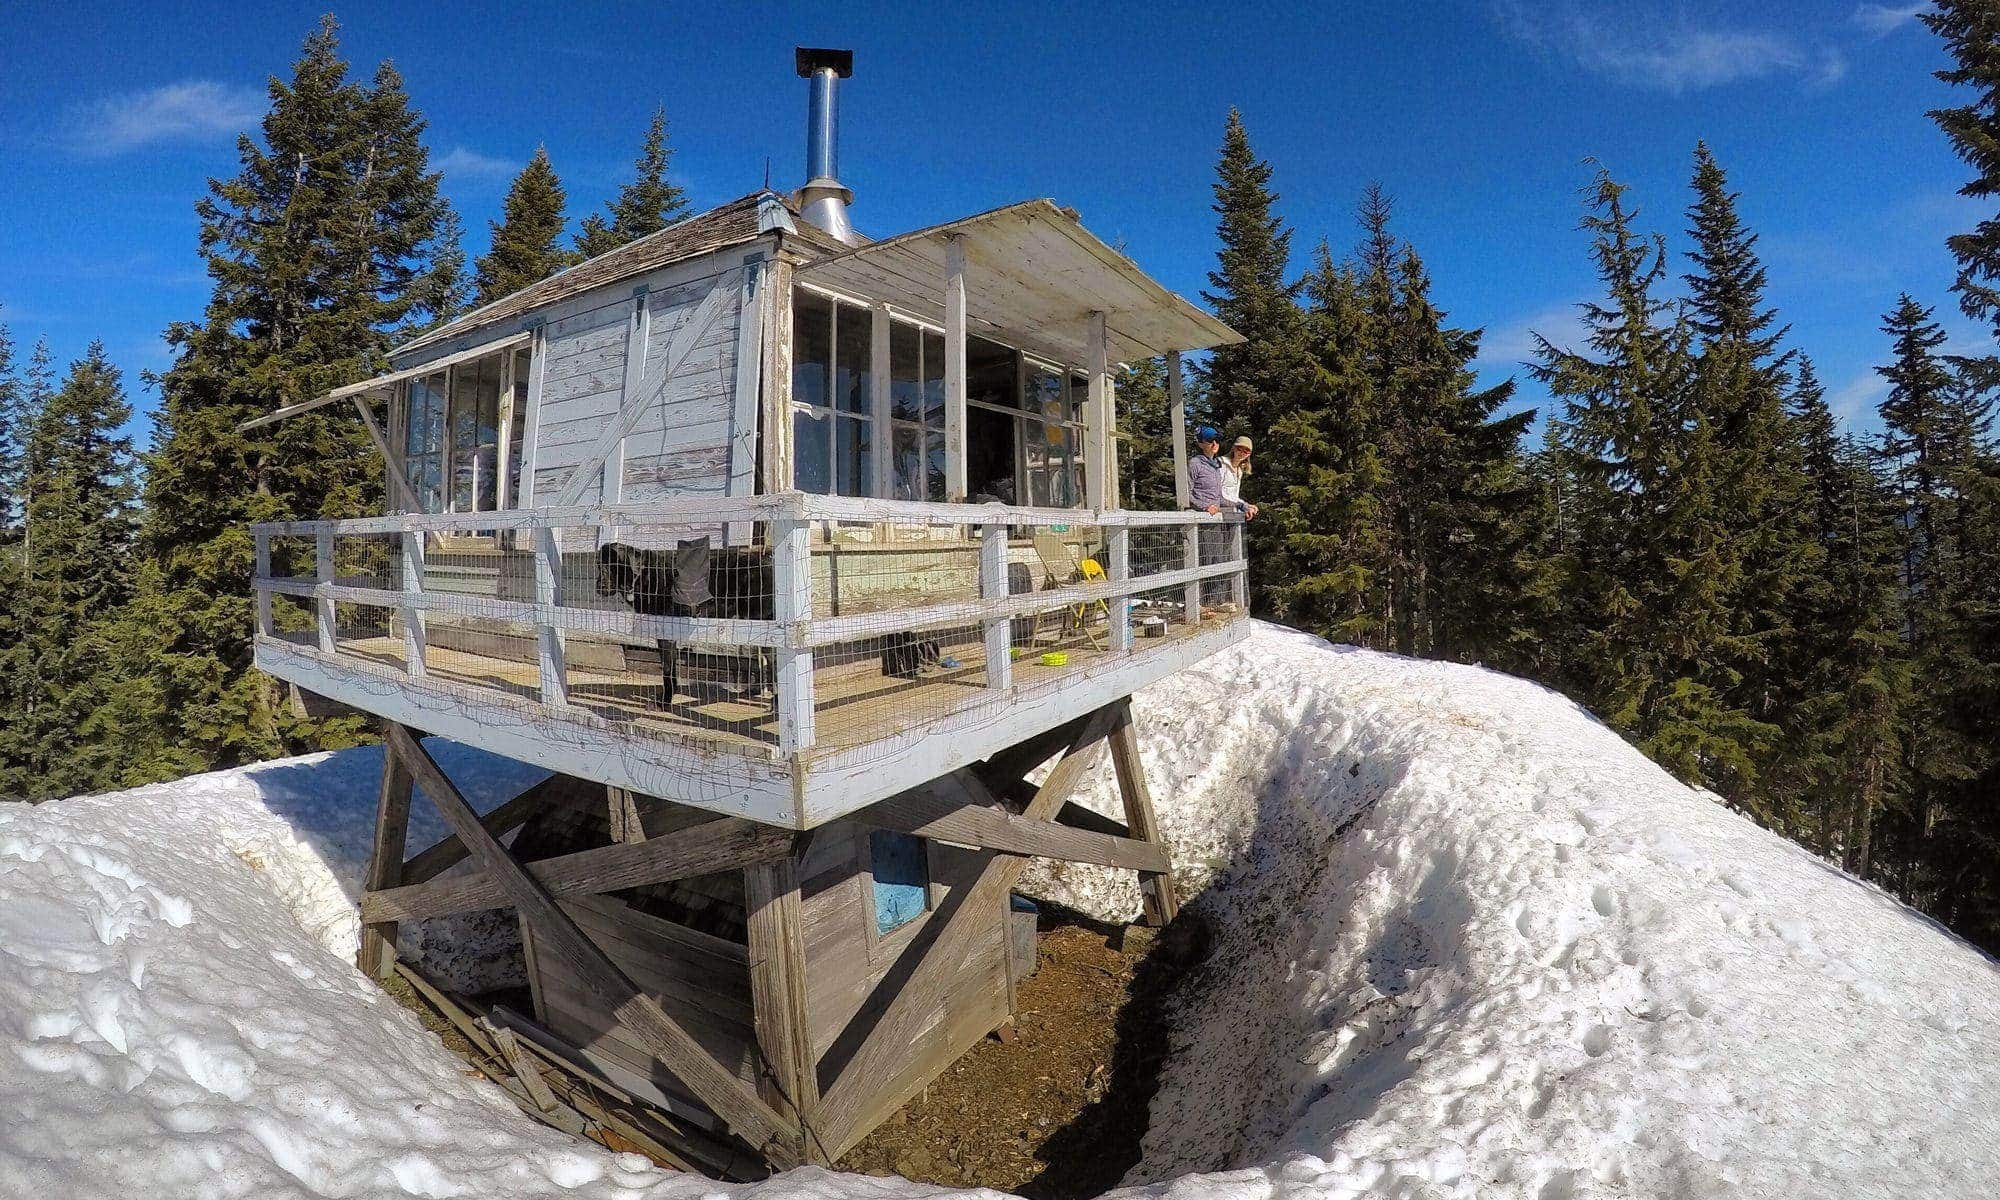 Bird's-eye view of Devils Peak fire lookout in snow